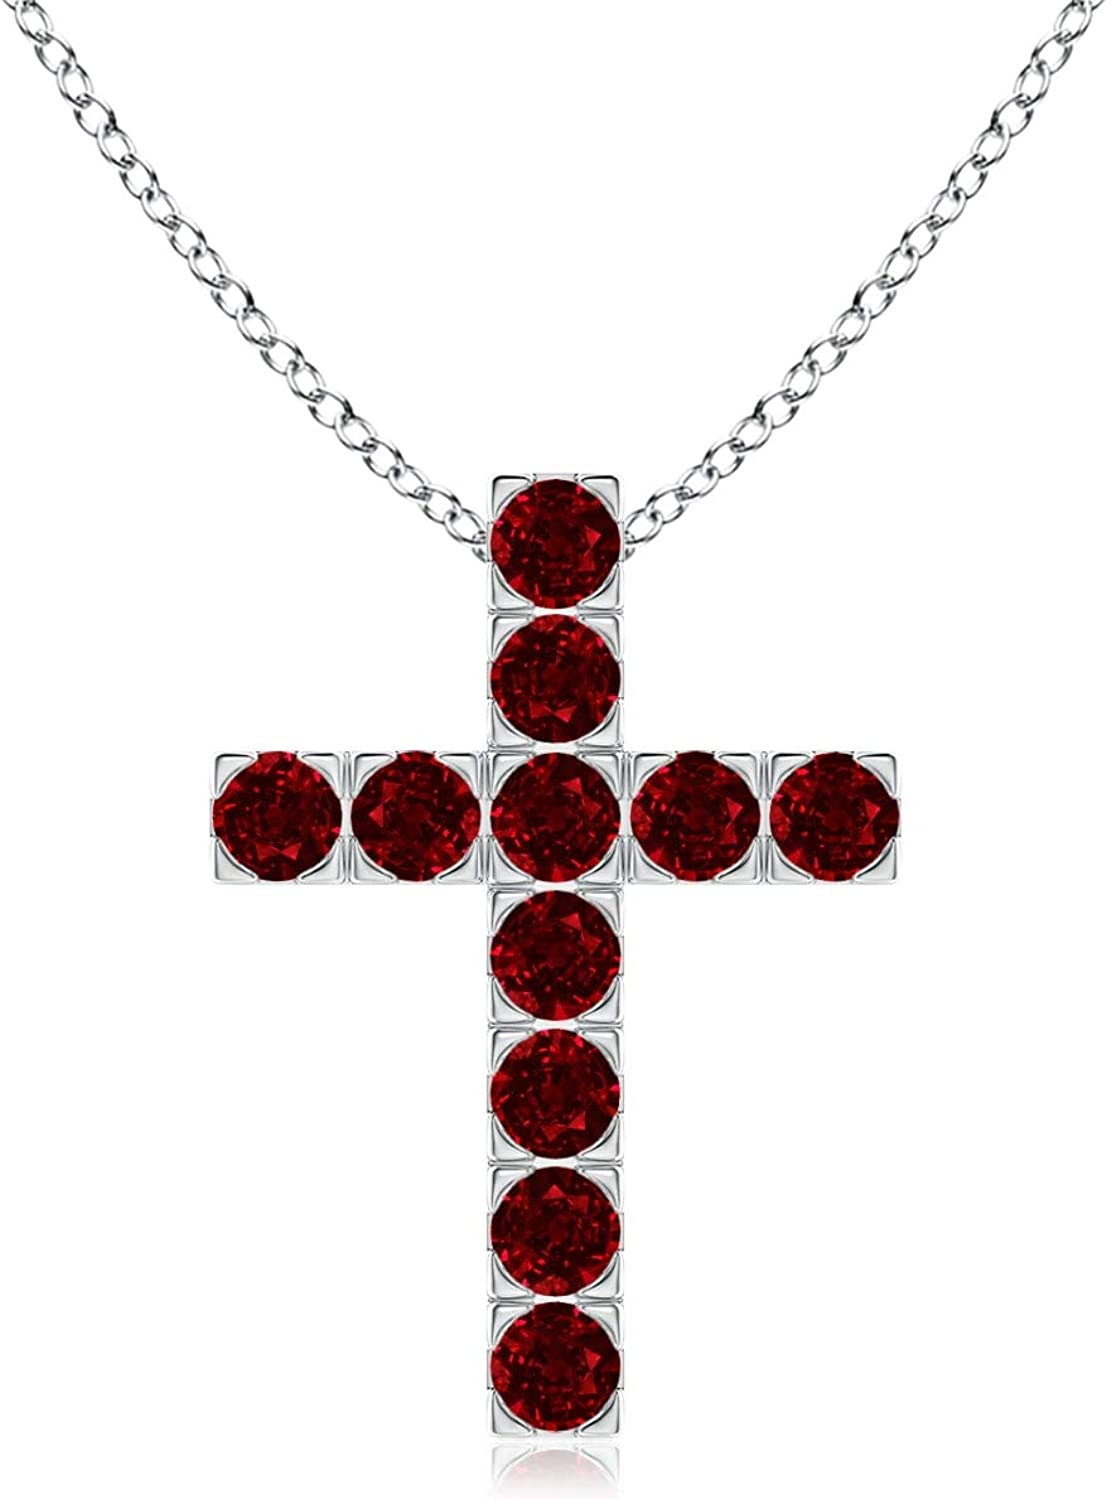 Cross pendant 2 variants with crystals or handmade pearls in precision beaded weaving-Moda 2018 Cross pendent